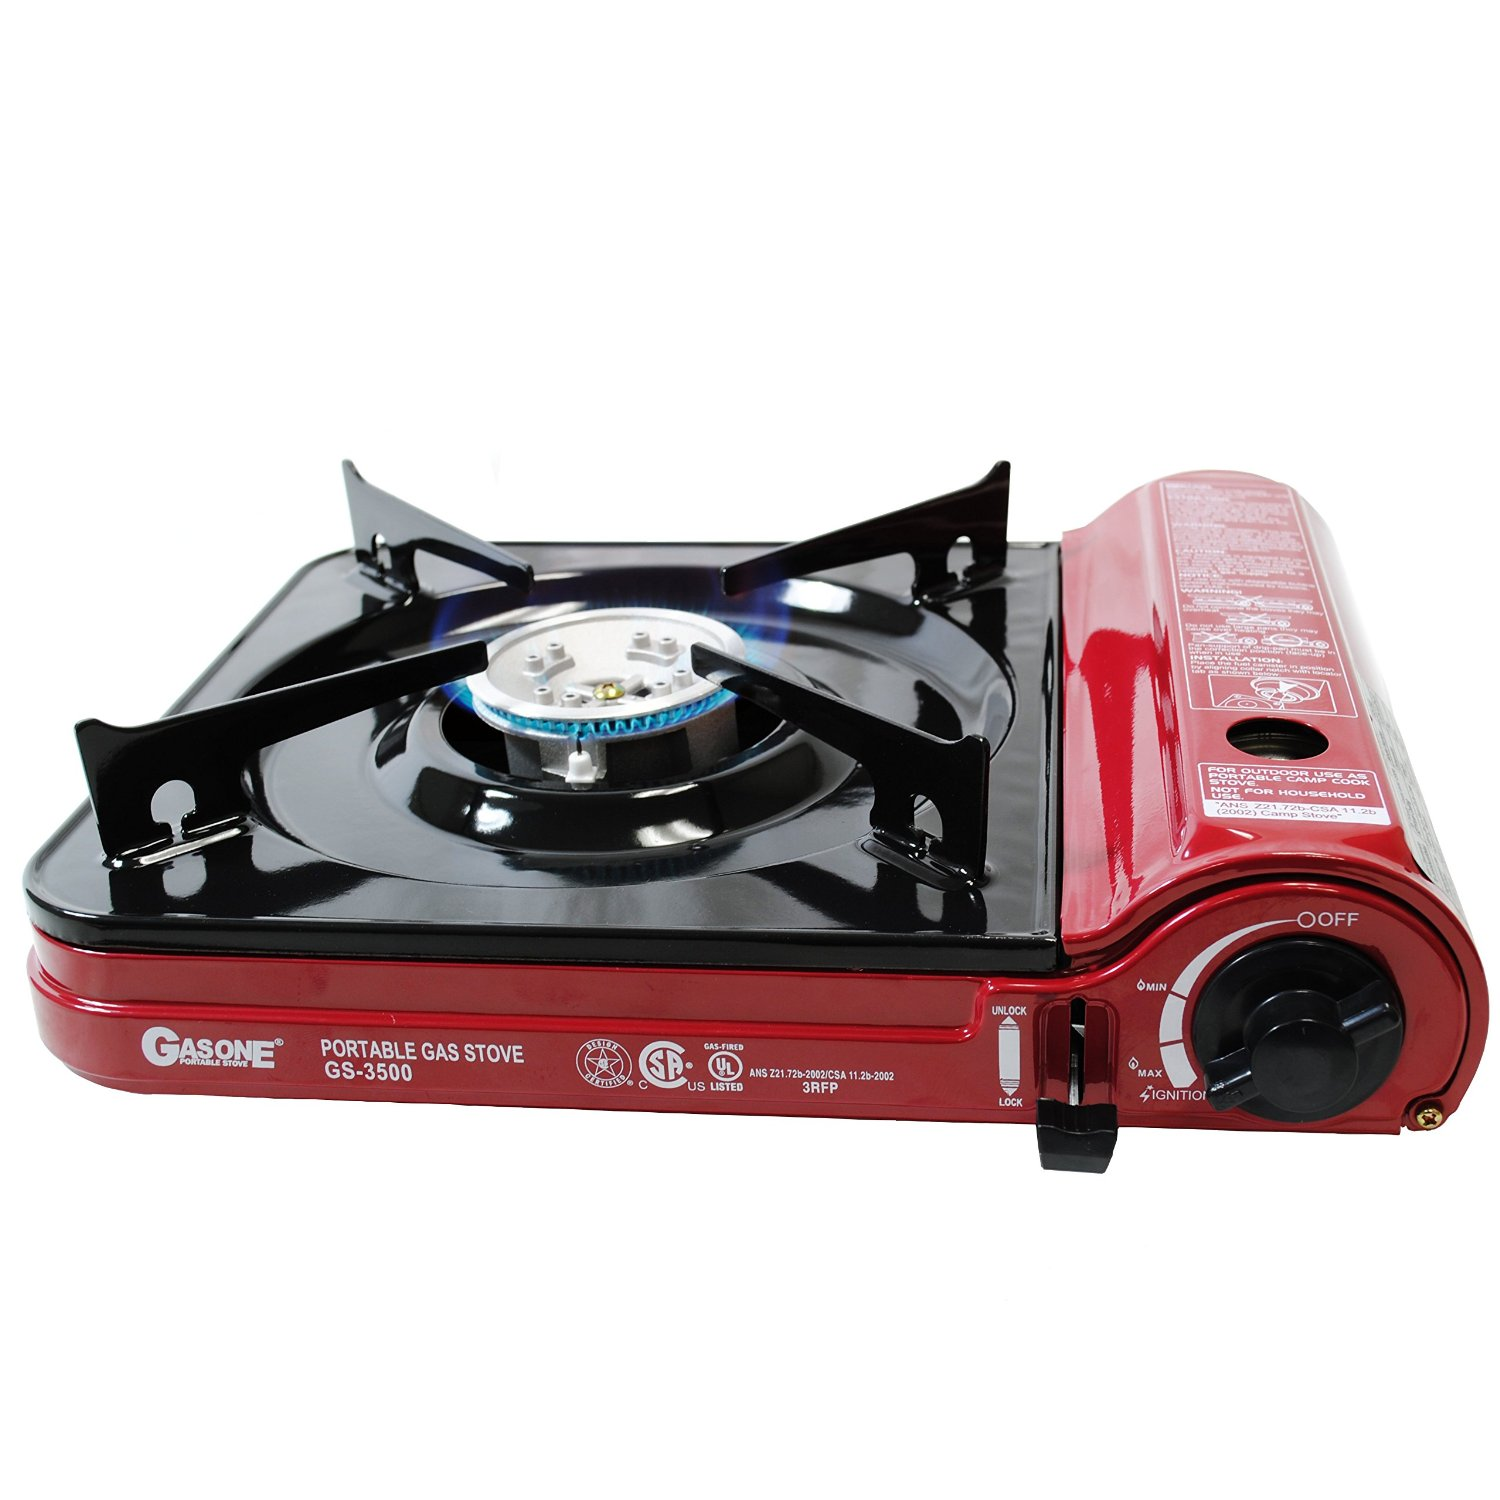 GAS ONE NEW GS-3500 Portable Butane Gas Stove UL/CSA Listed with Colorbox/Carrying Case perfect - Multi-Purpose Stove for Hiking, Camping and Emergency Preparedness